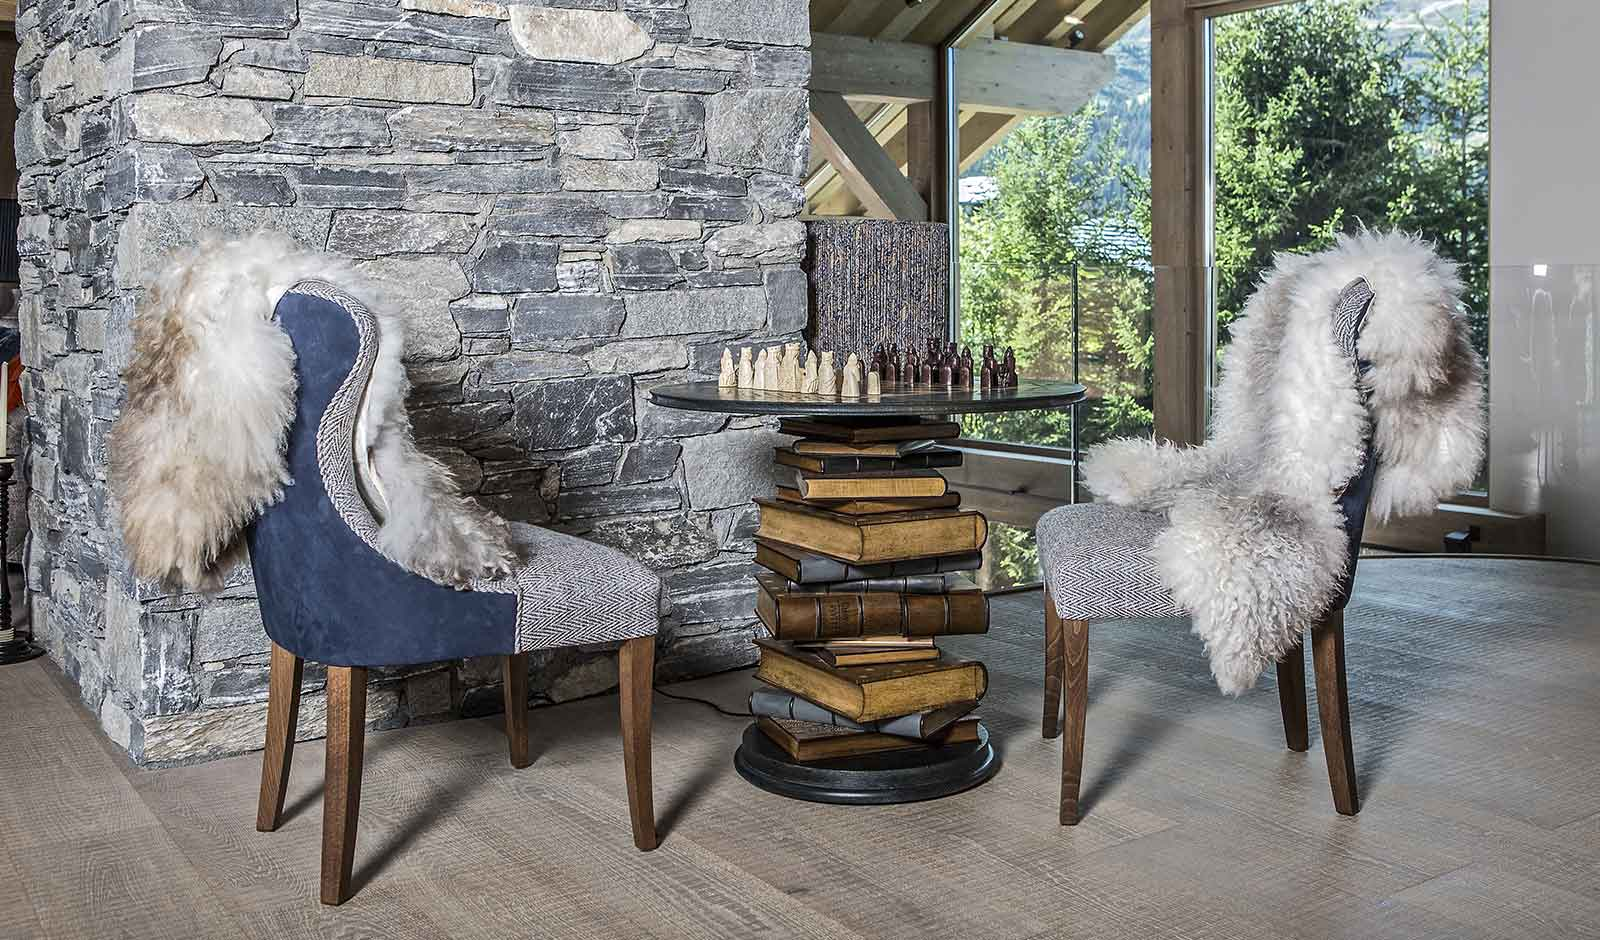 chalet-alpaca-9-atelier-crea-and-co-architecte-design-project-manager-meribel-savoie